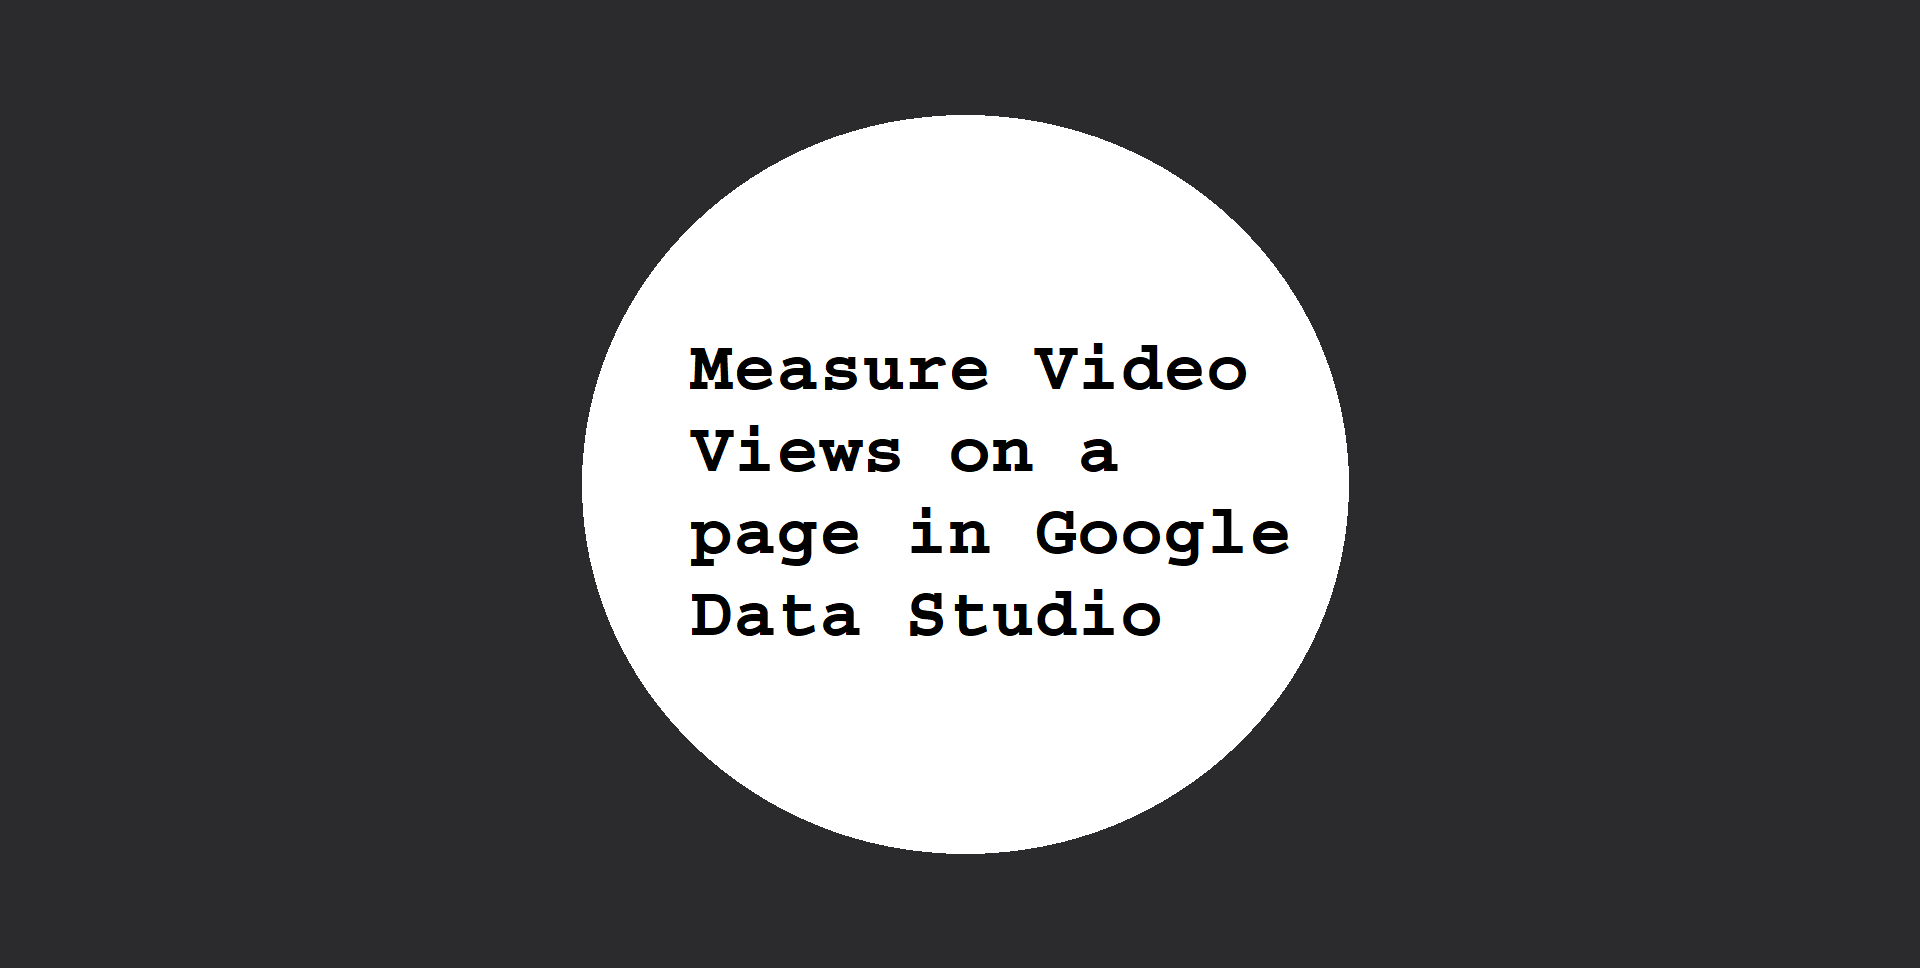 Measure Video Views on a page in Google Data Studio